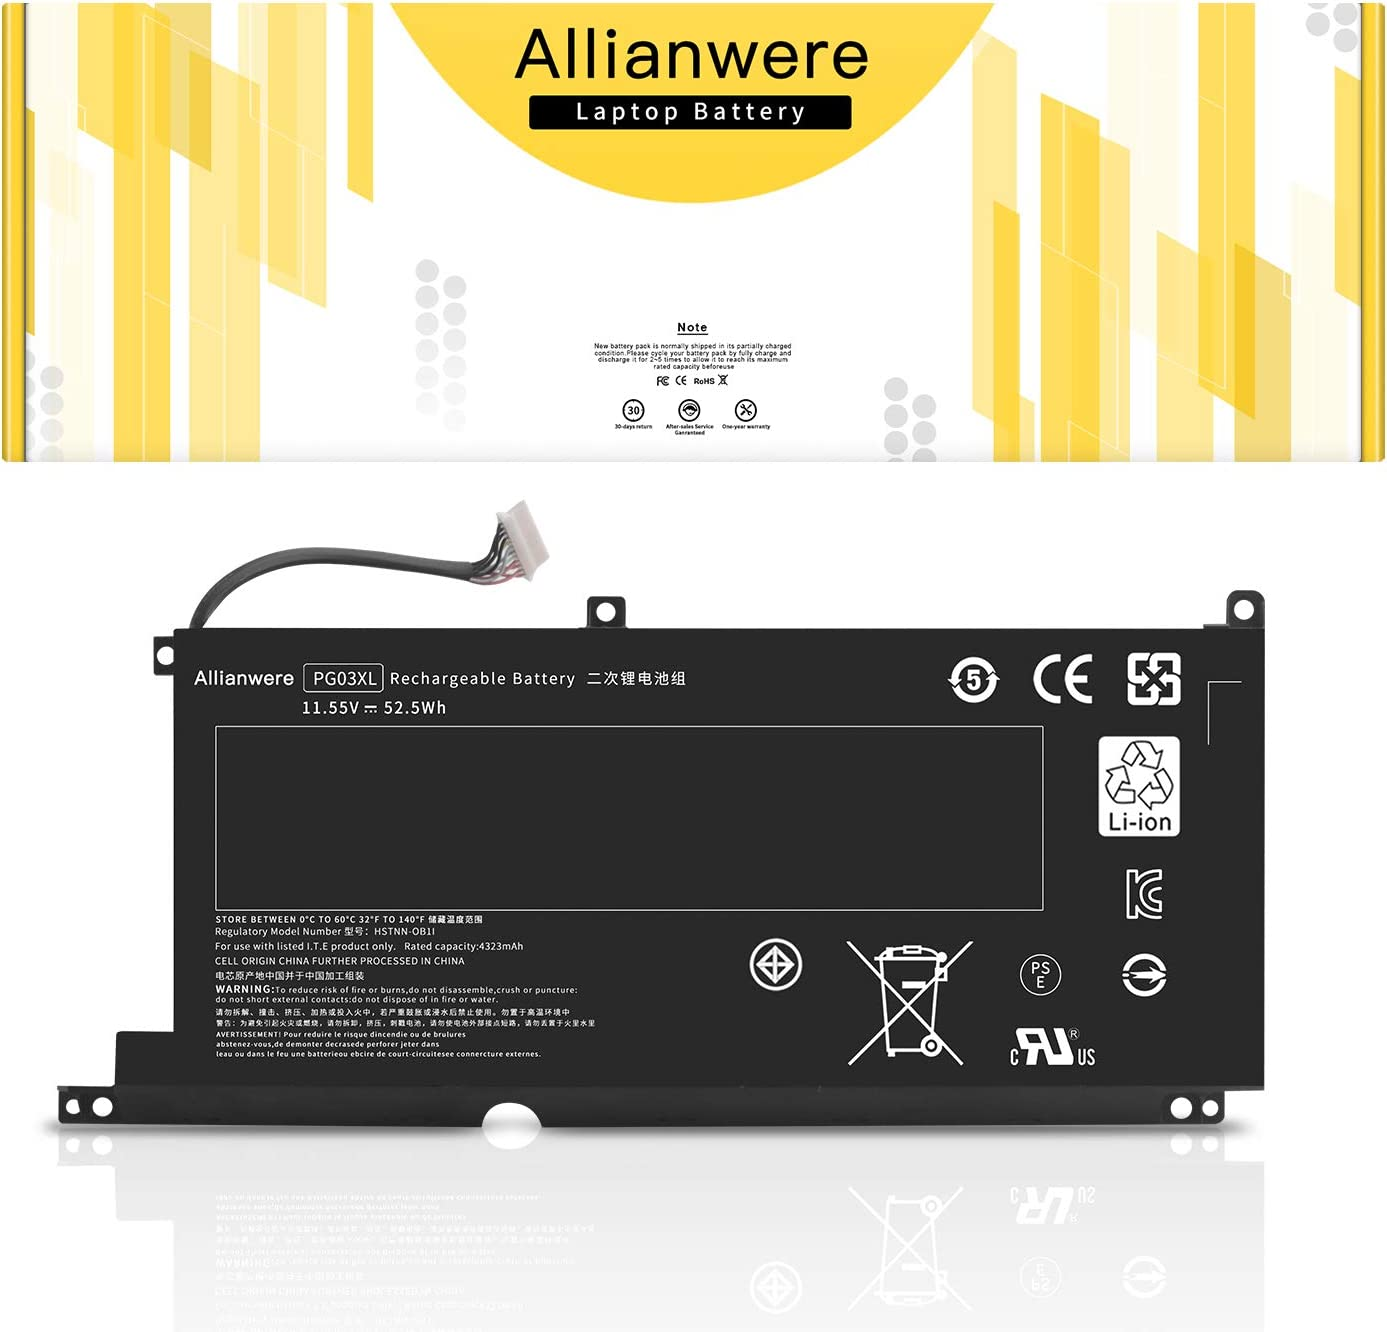 Allianwere PG03XL Laptop Battery Compatible with HP Spectre X360 15 AP011DX AP012DX Ultrabook Notebook PGO3XL 831532-421 831532-422 831758-005 Replacement